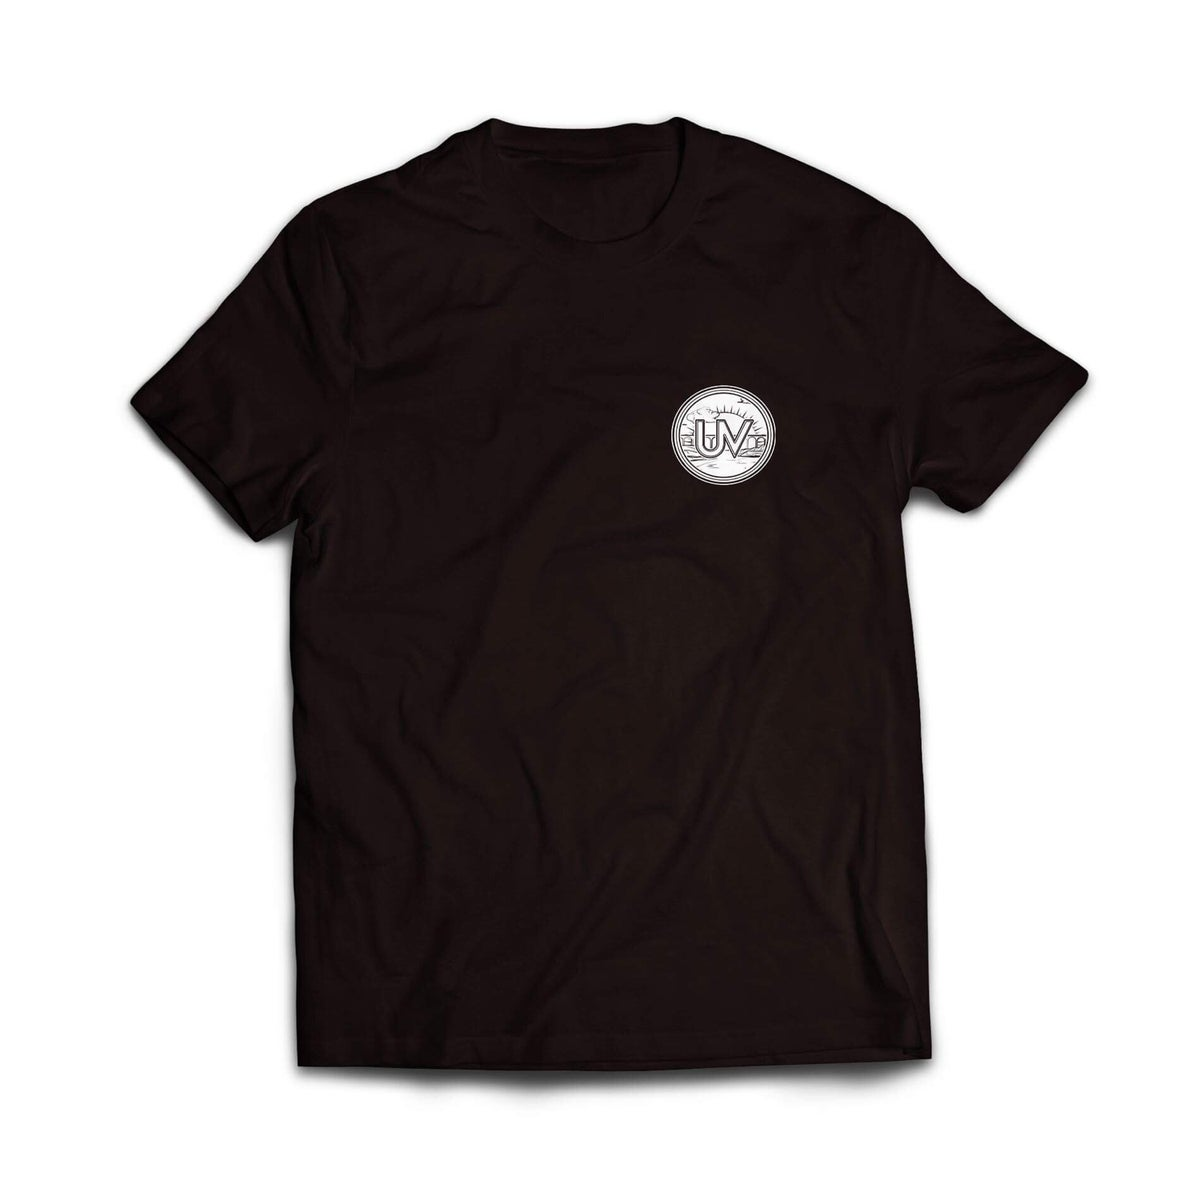 Image of Black UV Patch T-Shirt